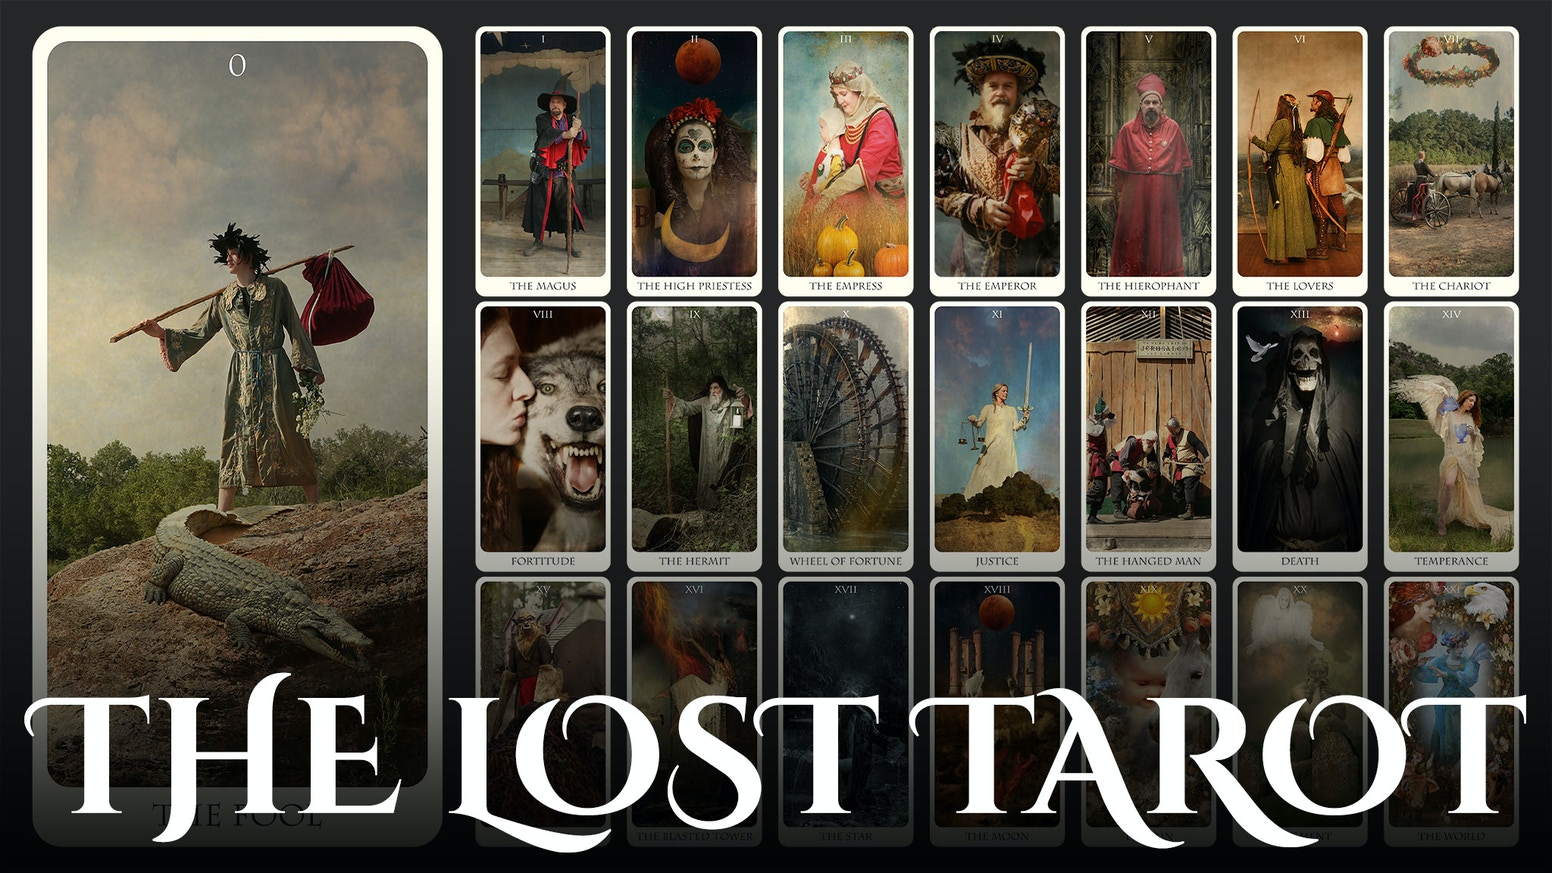 A spiritual tool in the form of a recently discovered Tarot of photo-based medieval imagery, based on a camera designed by da Vinci.